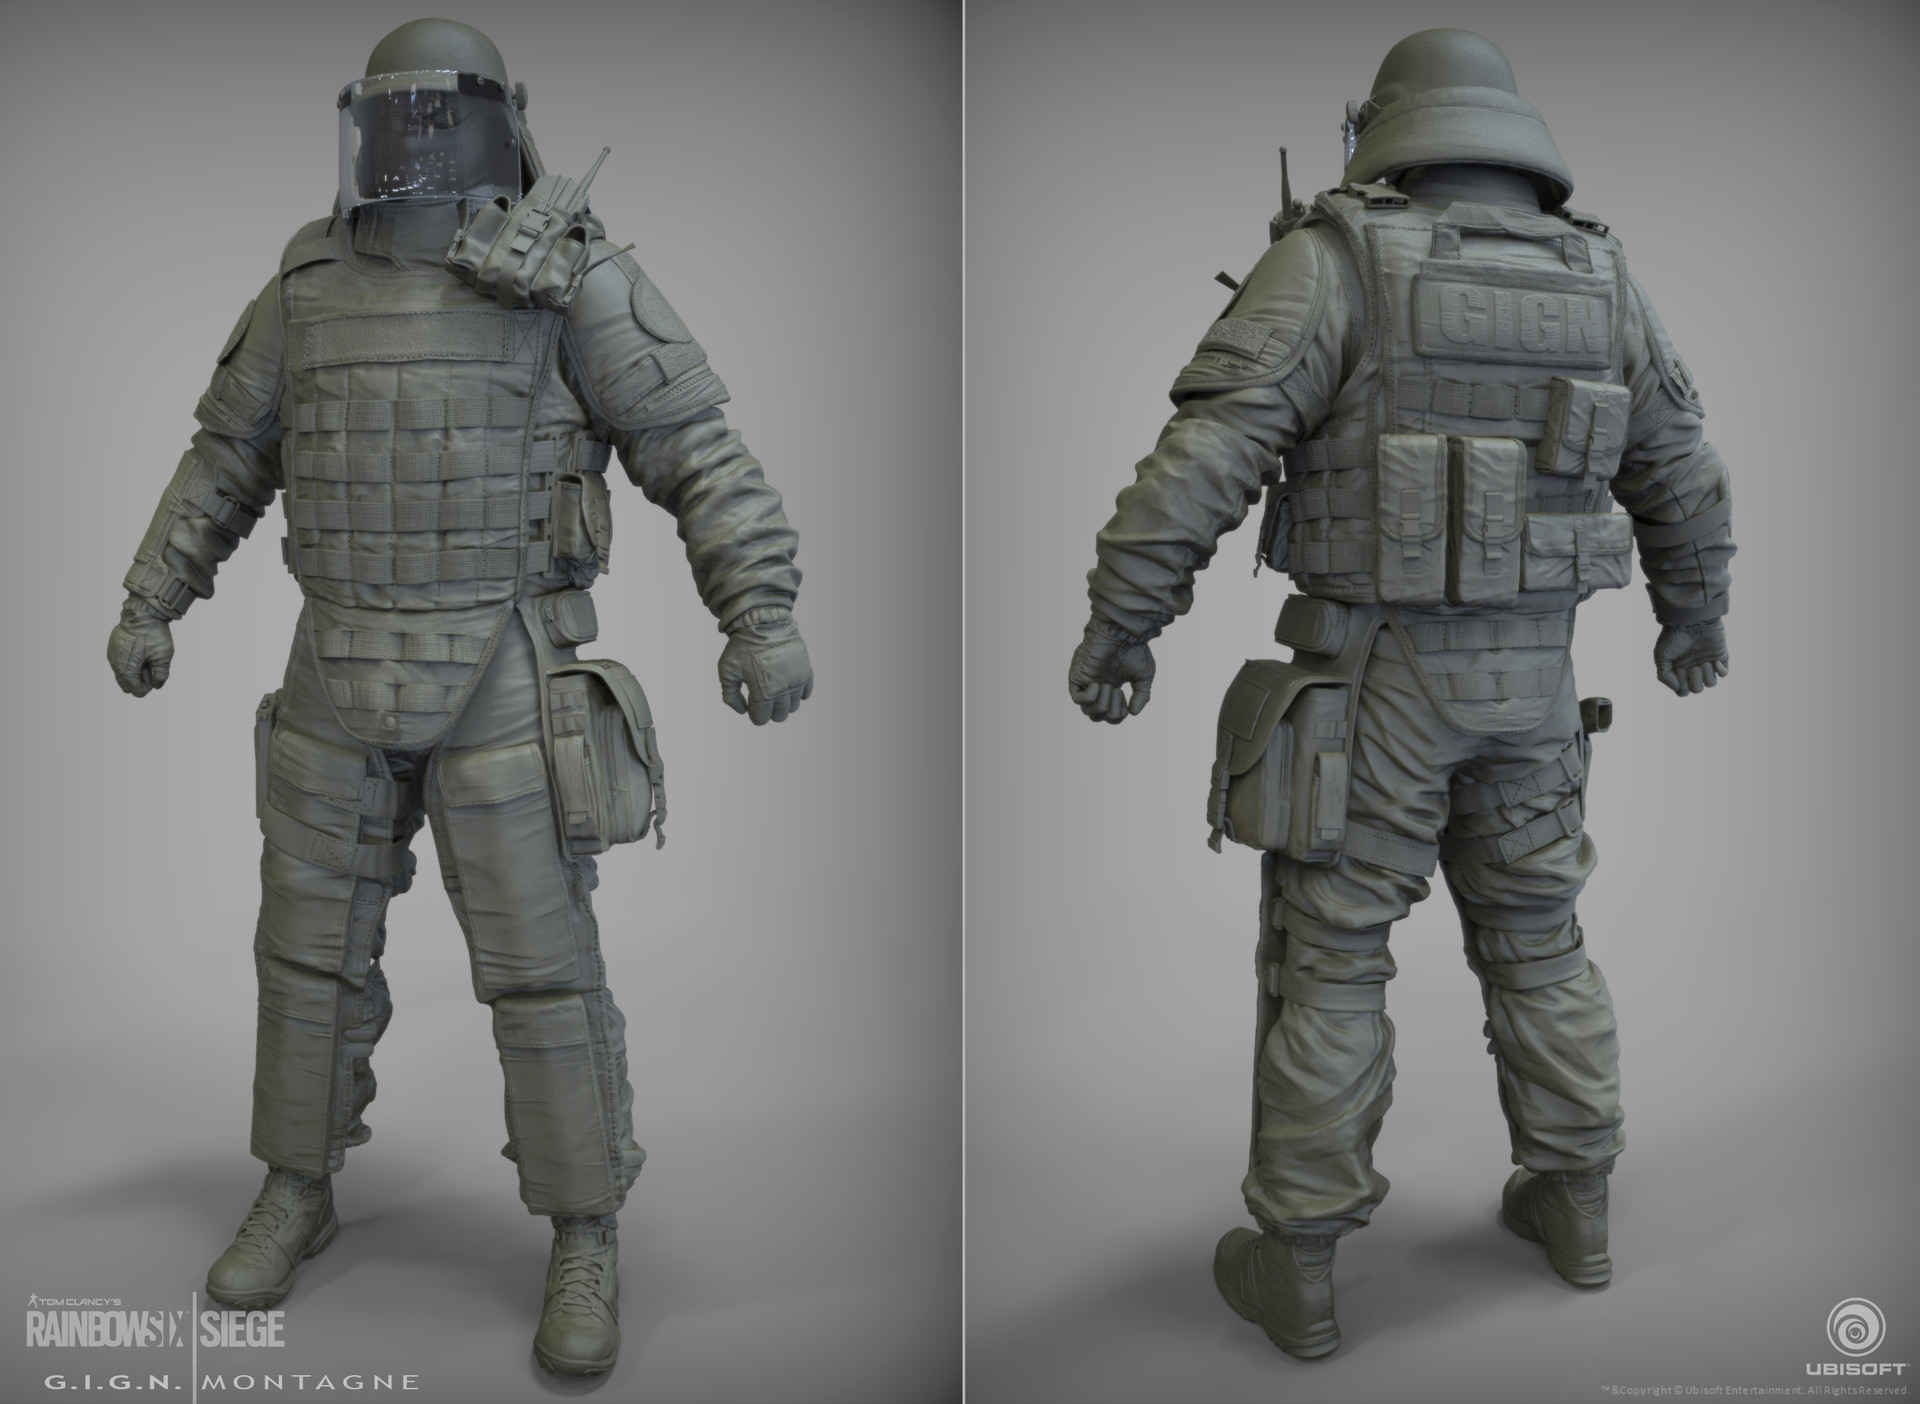 J mark gign montagne sculpt